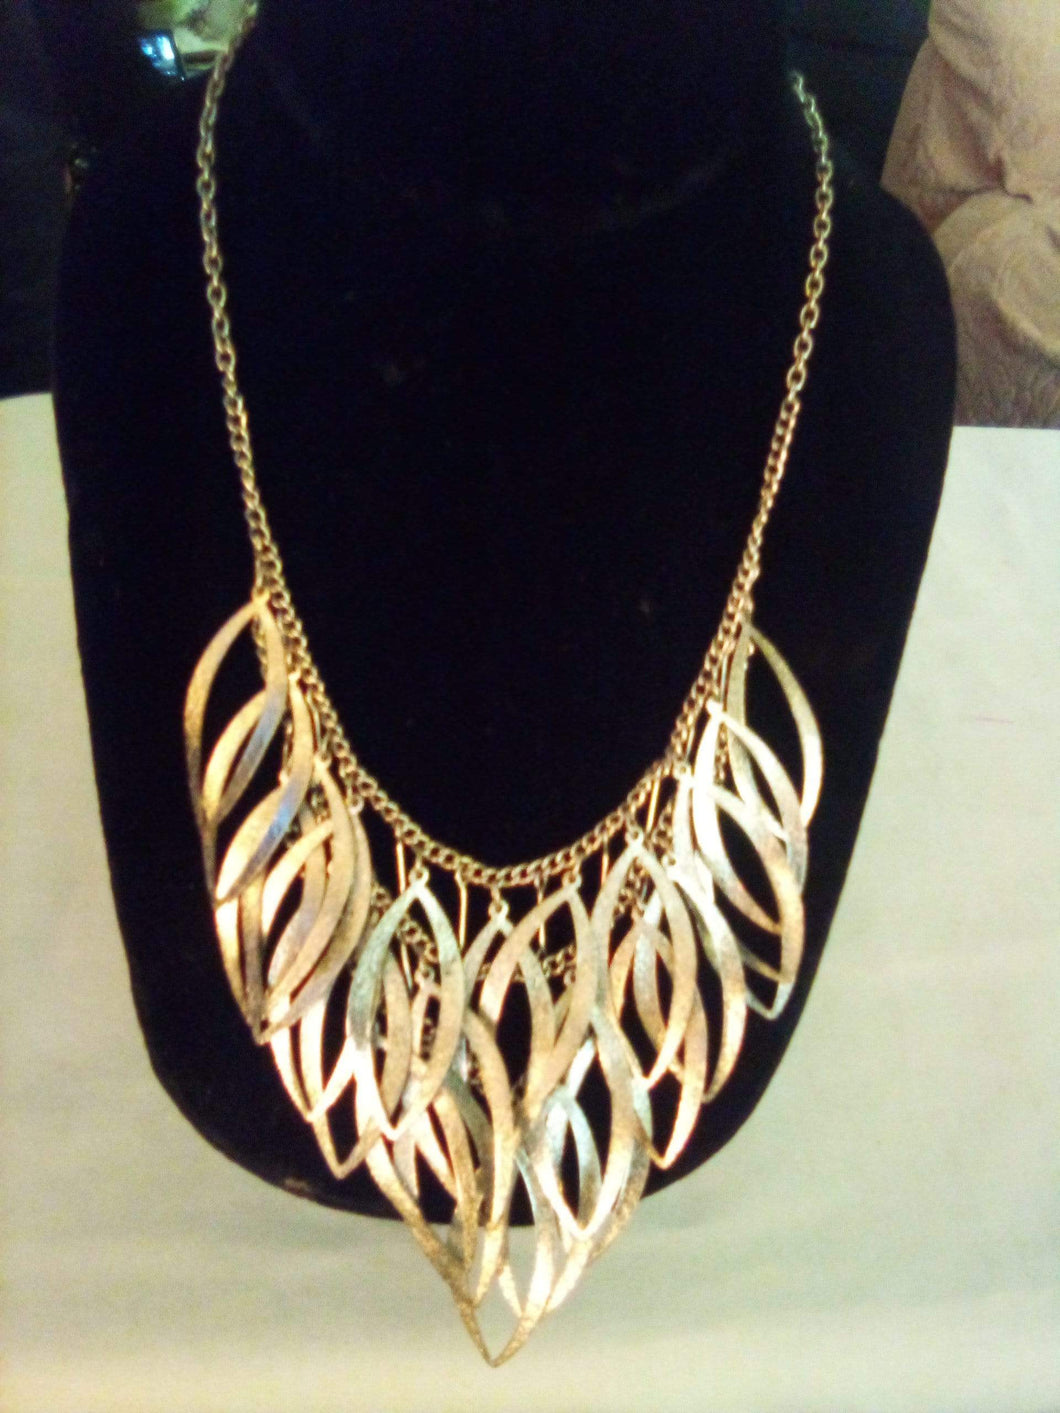 Creative silver tone necklace - B&P'sringsnthings